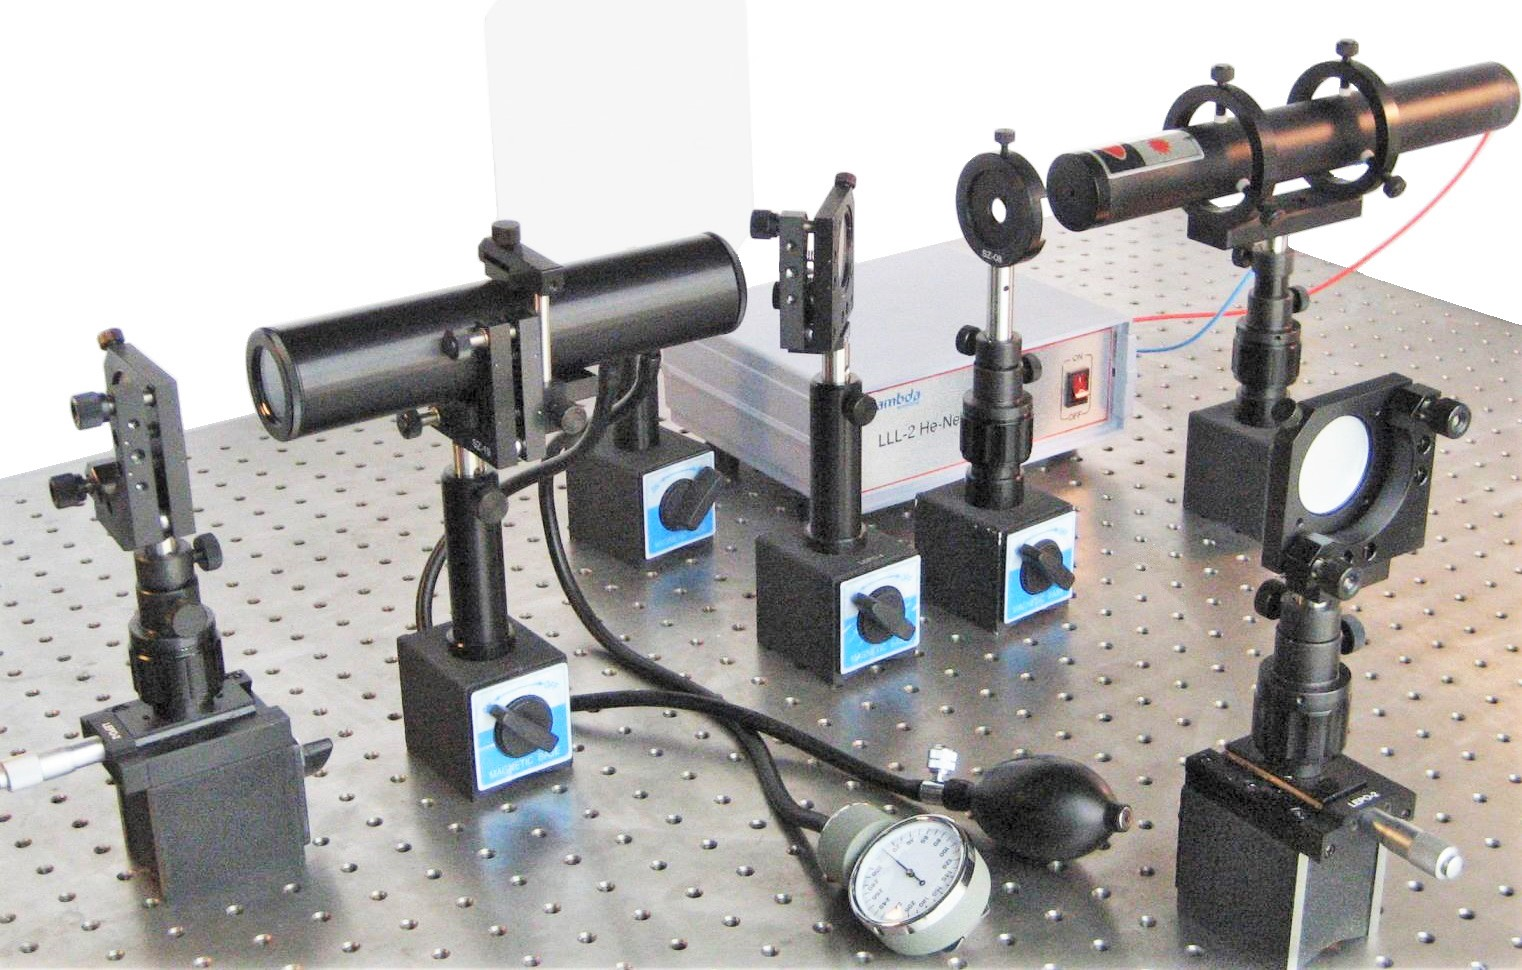 LEOK-3A Optics Experiment Kit - Enhanced Model